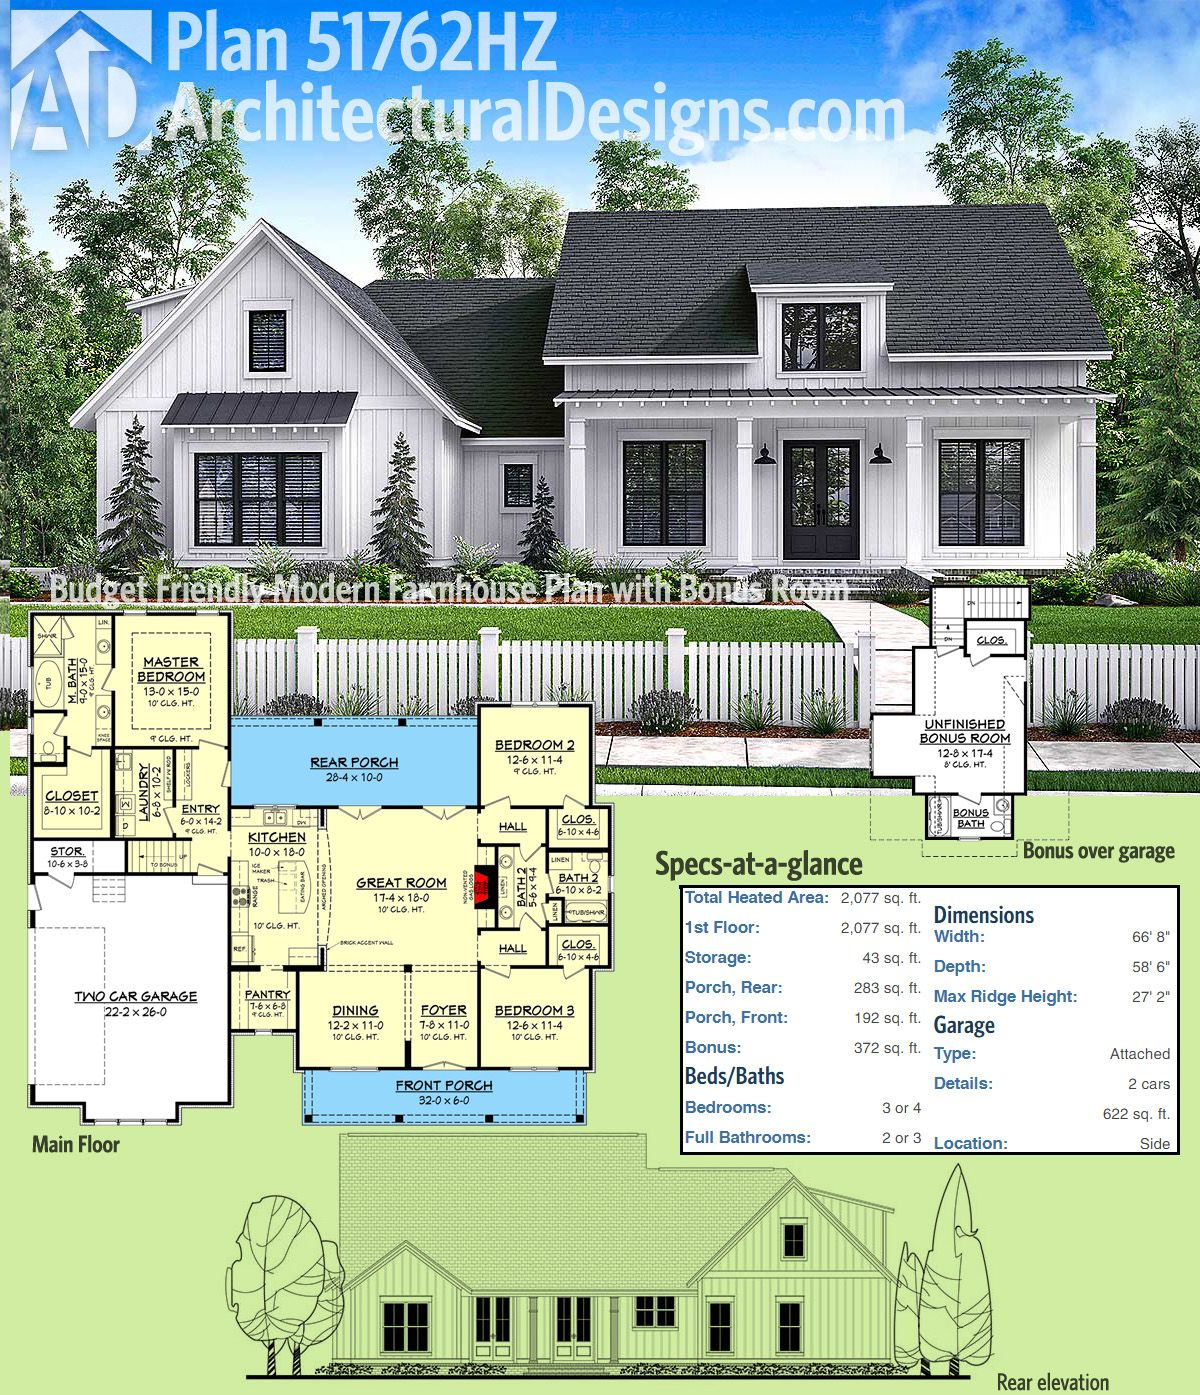 Plan 51762hz budget friendly modern farmhouse plan with for One level house plans with bonus room